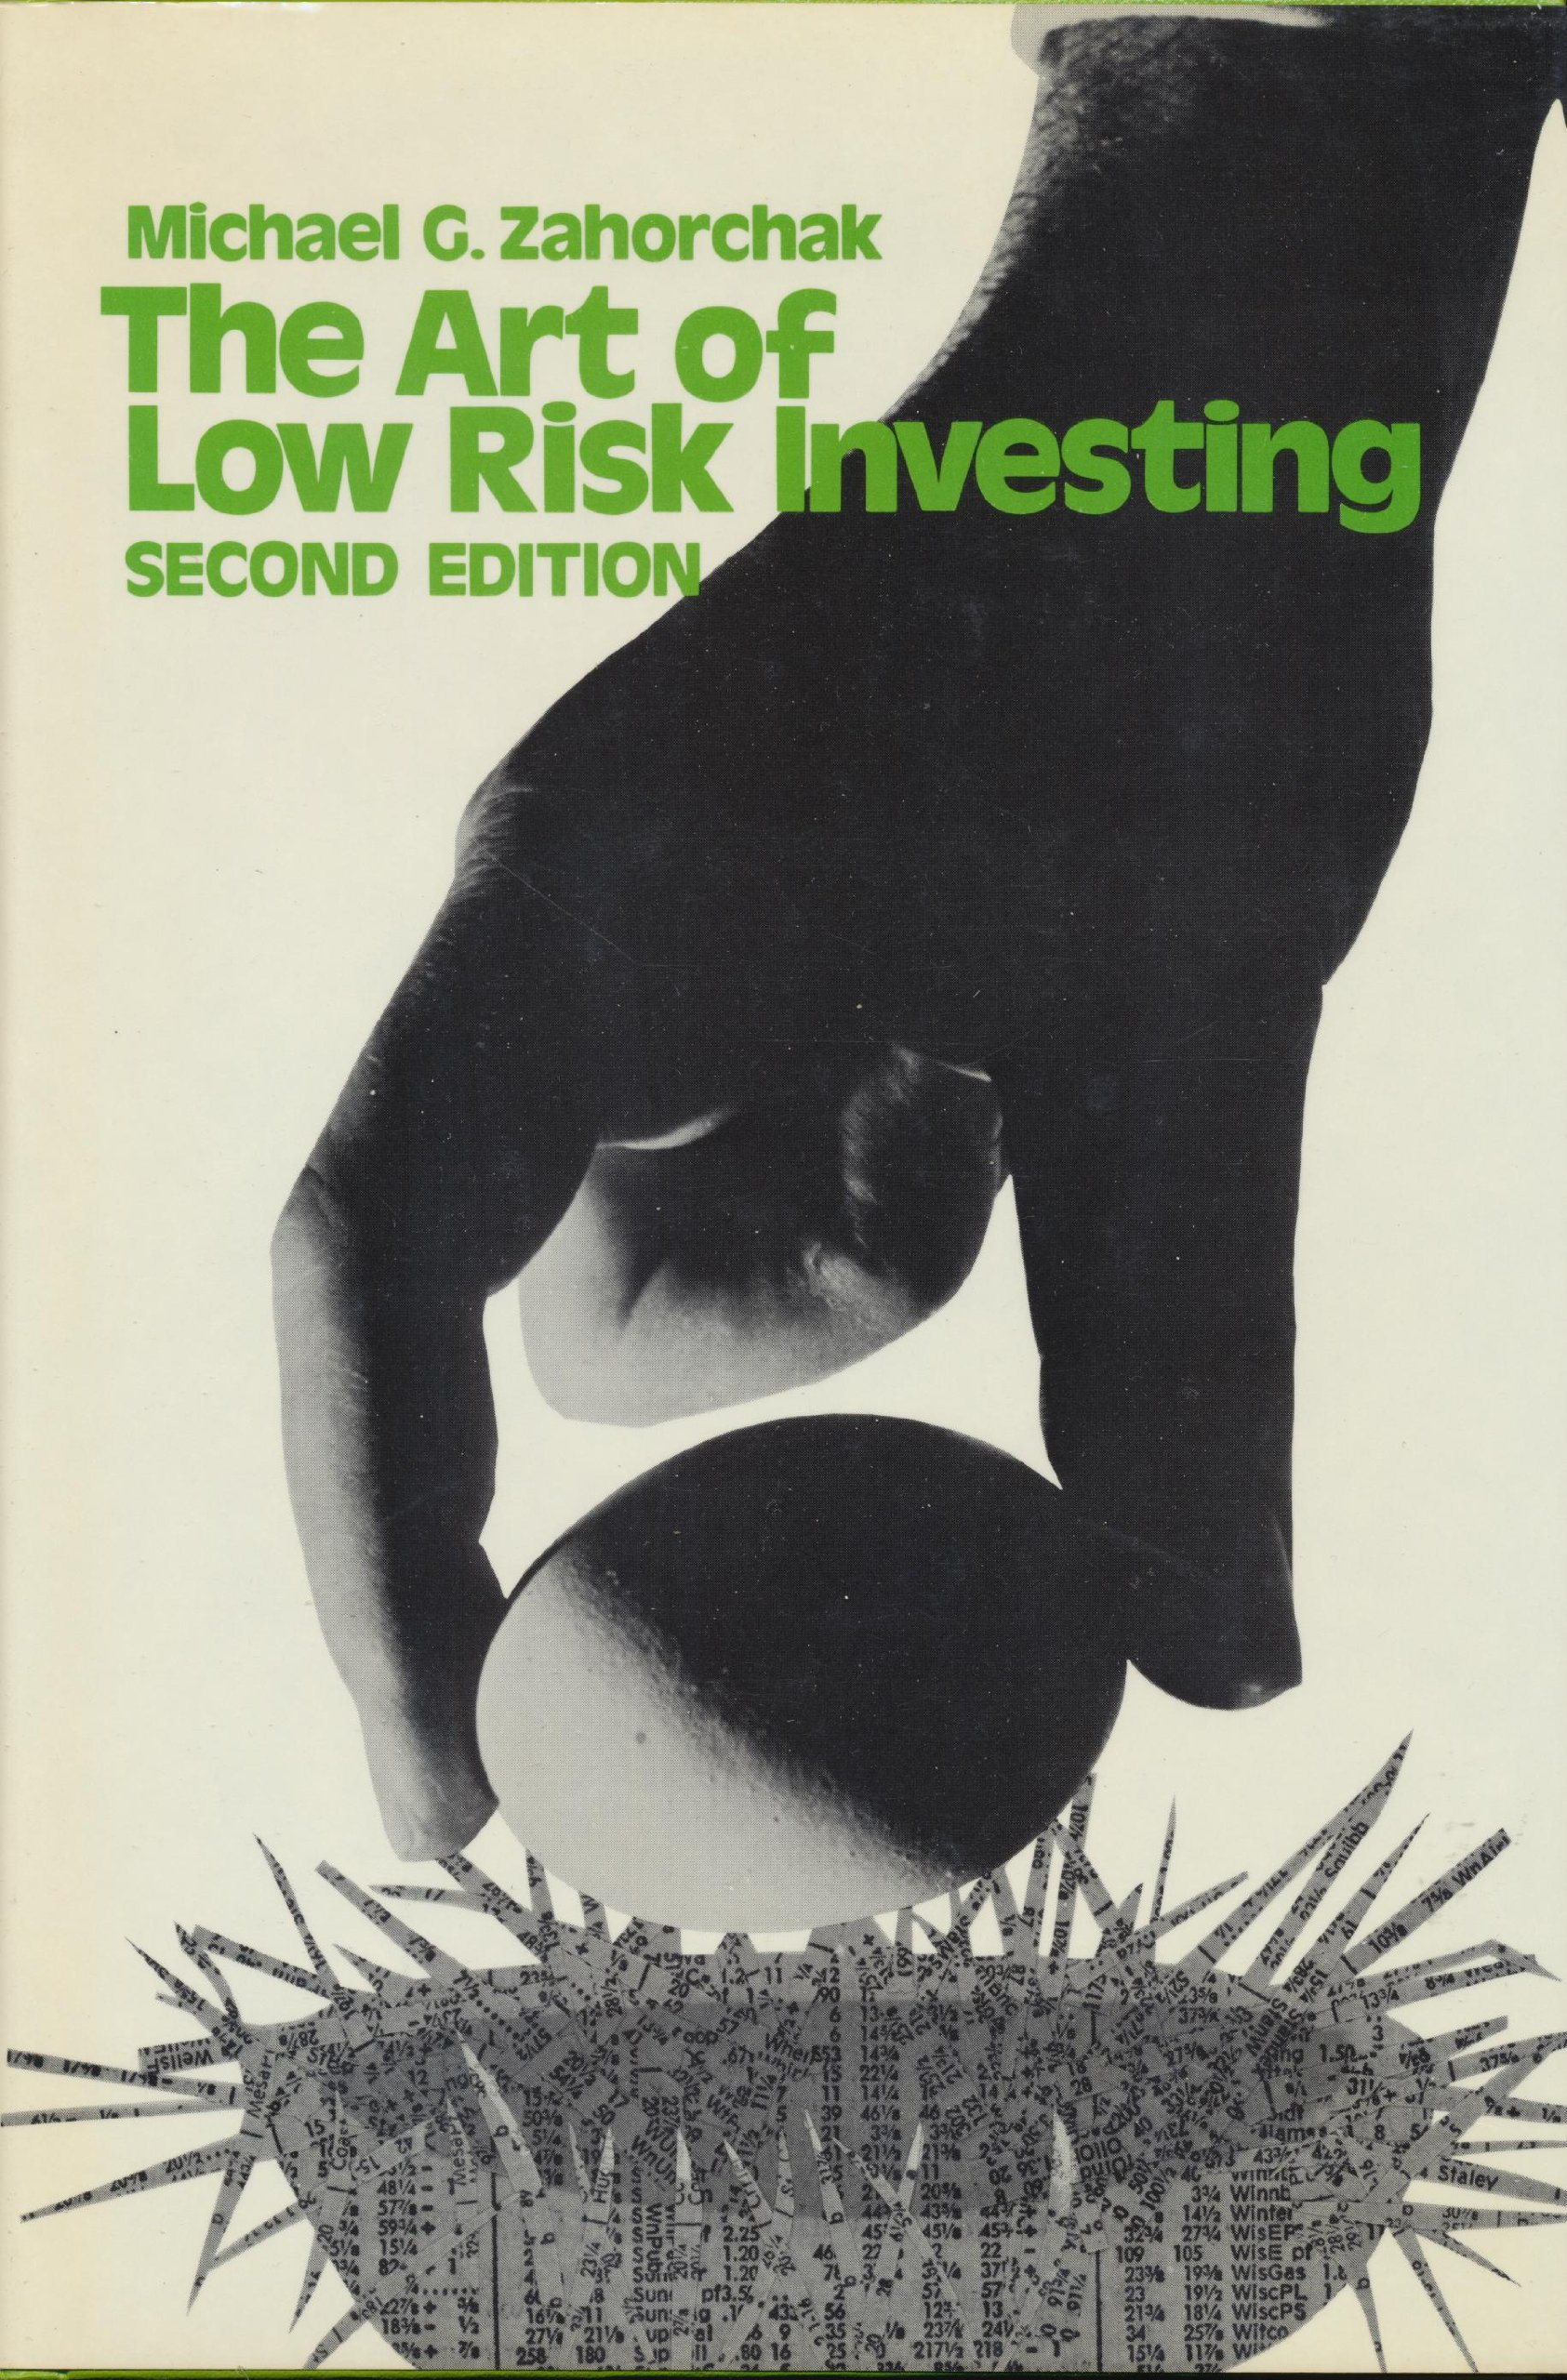 Art of Low Risk Investing